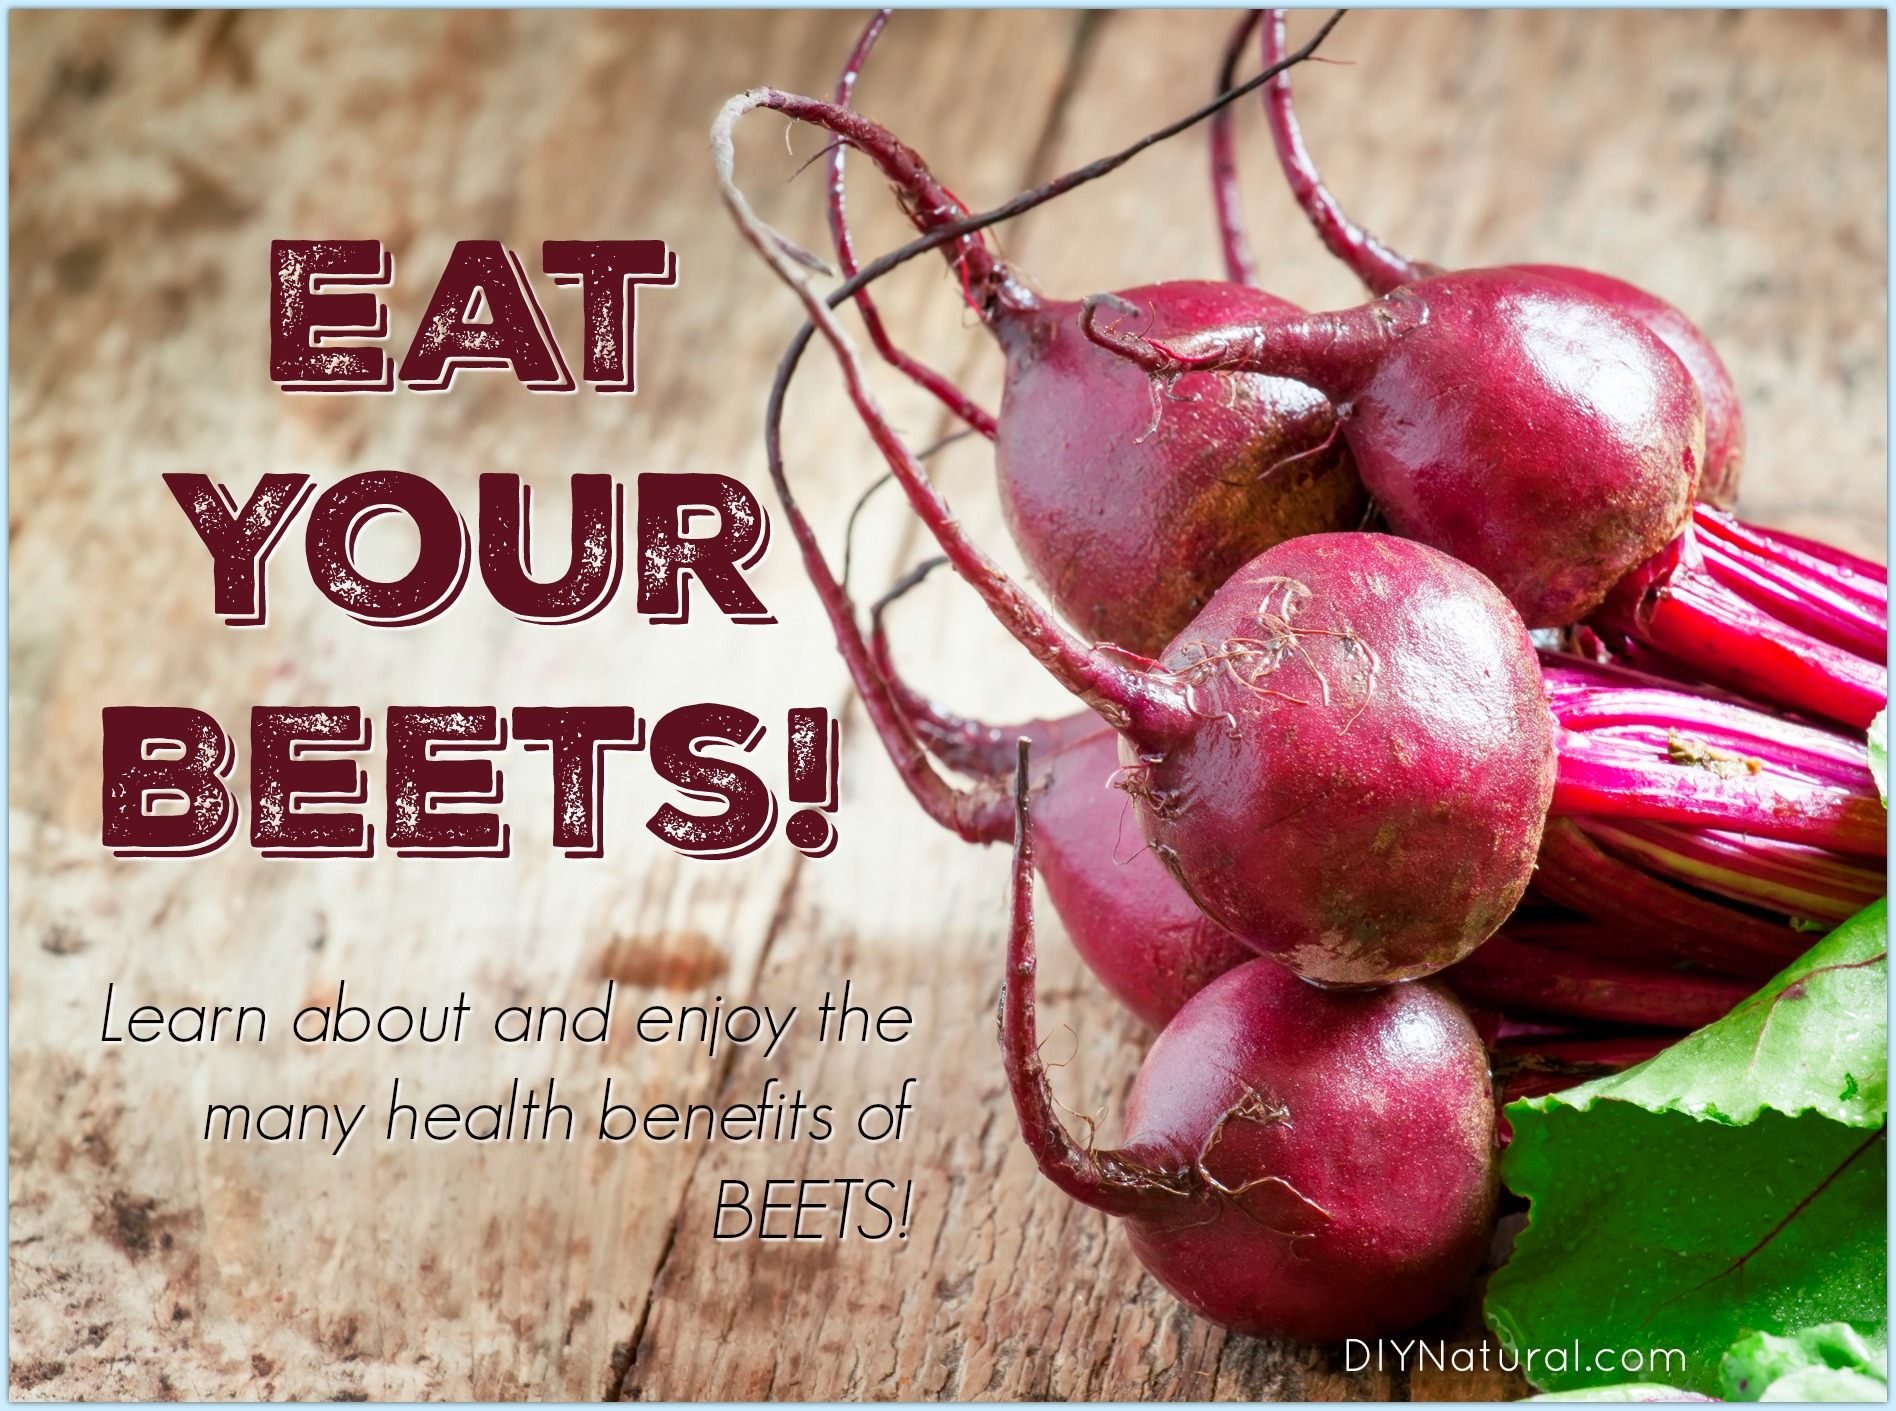 Beets Benefits Are Beets Good For You Yes And You Should Eat Them